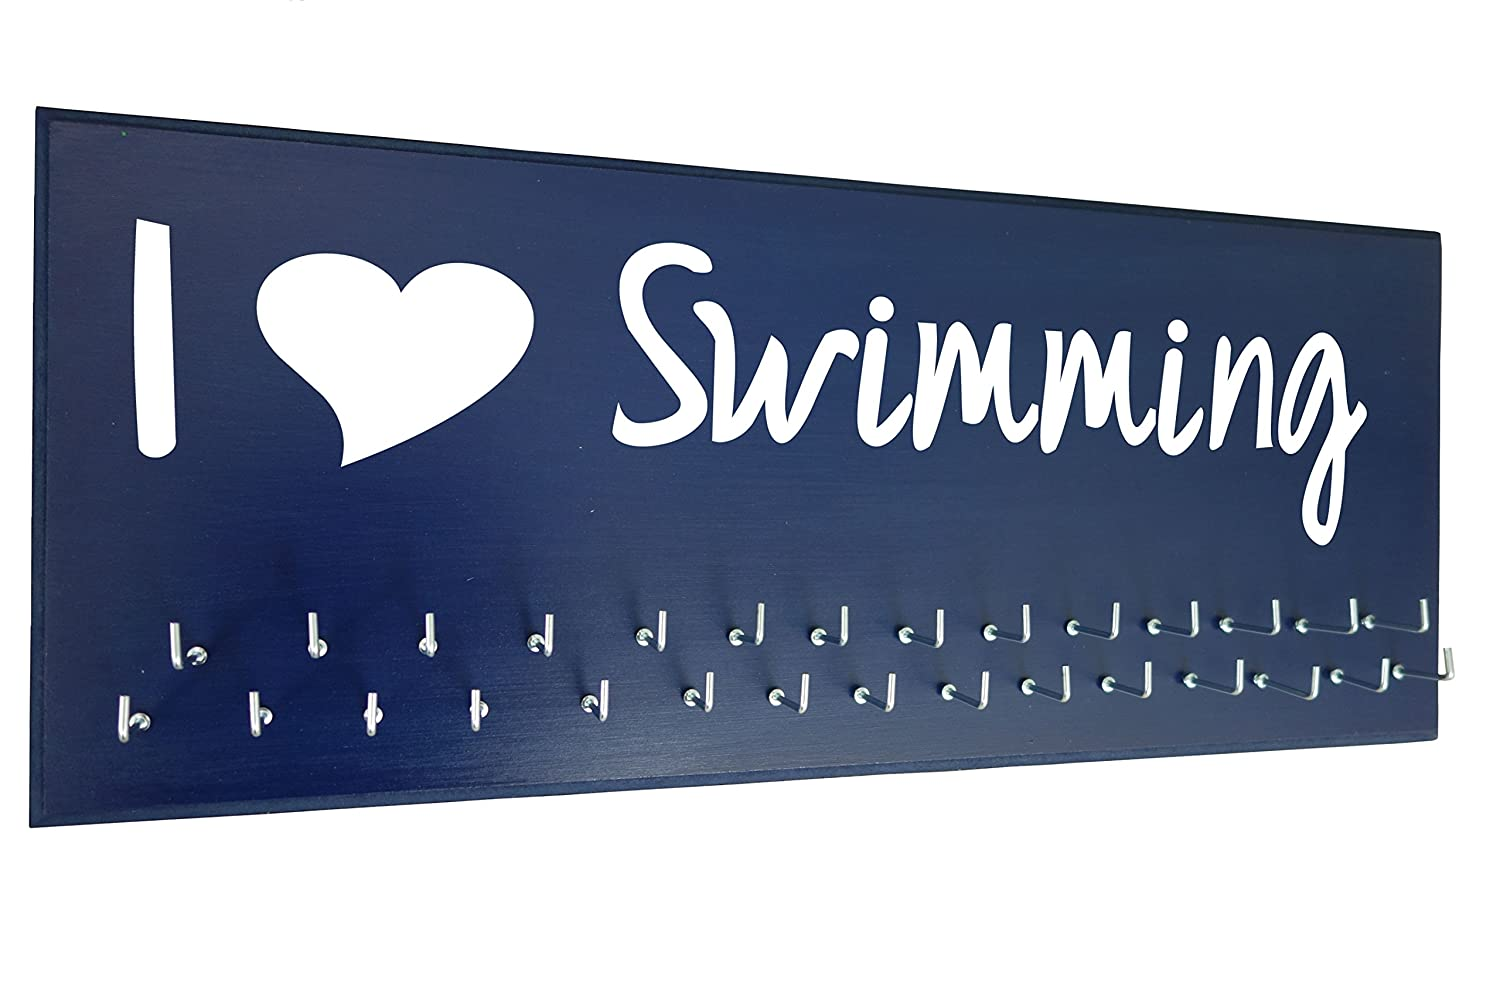 """I LOVE SWIMMING"" Swimmer Gifts, Swimming Award Display"